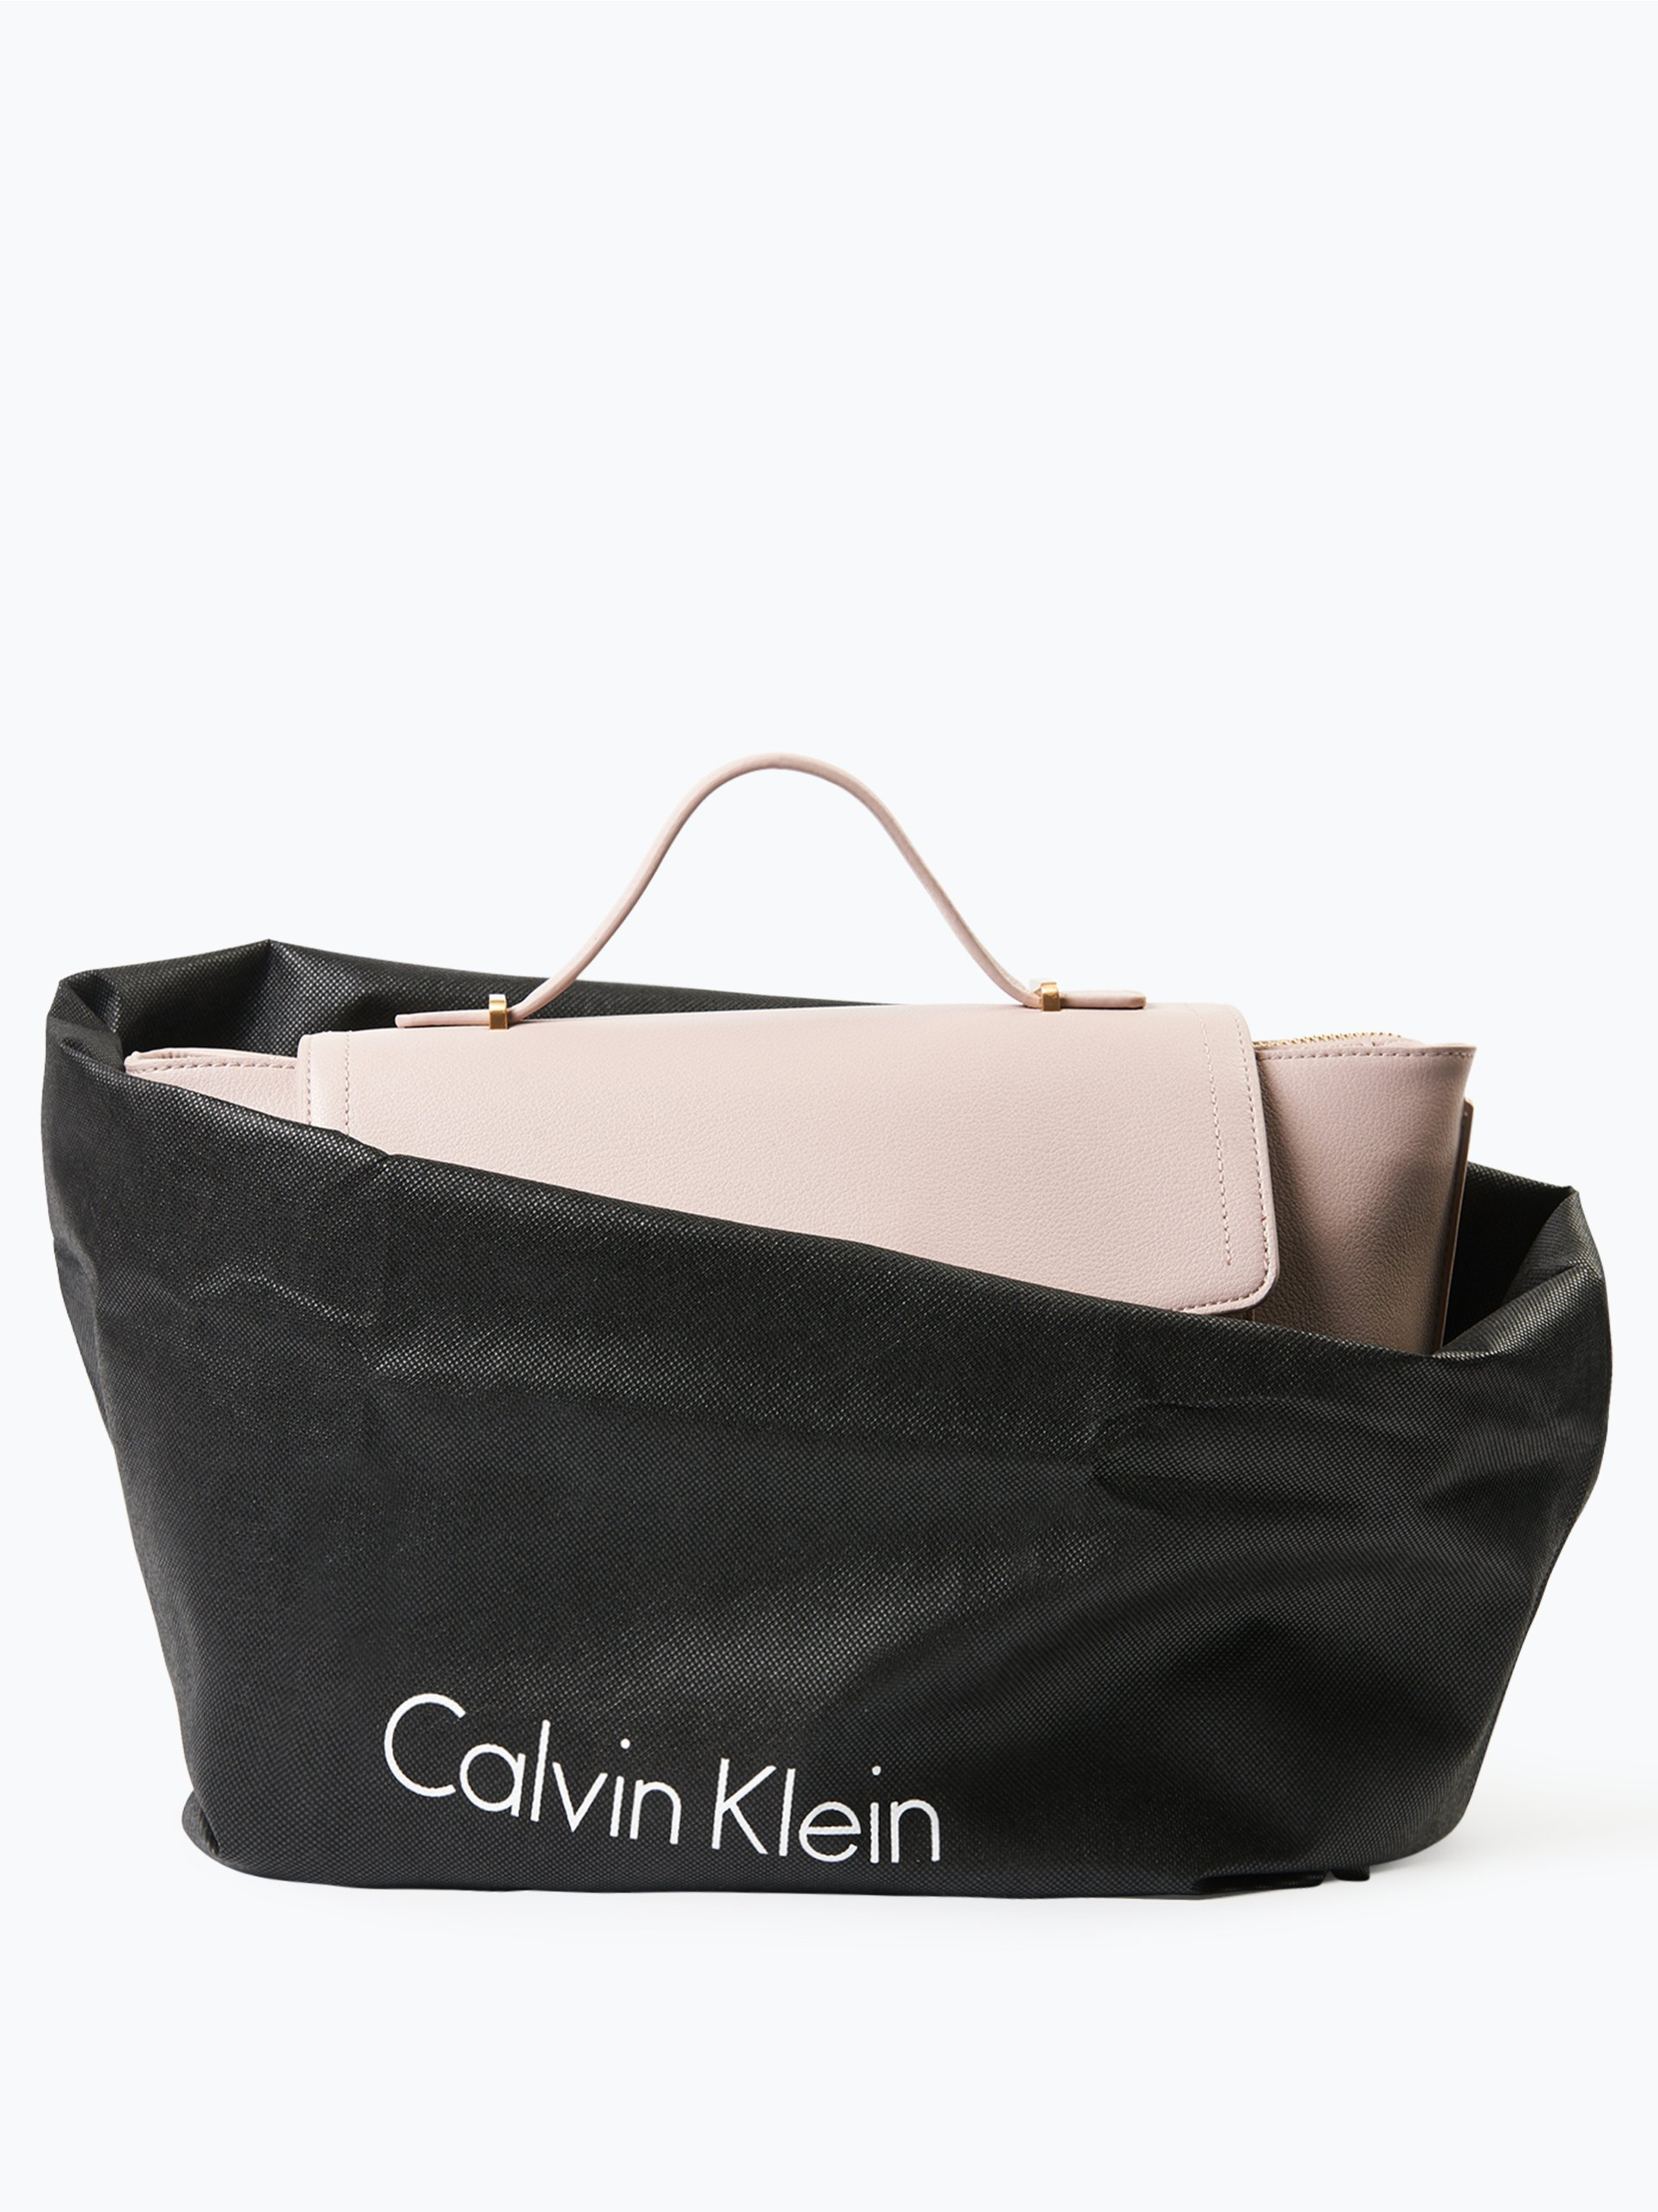 calvin klein damen handtasche in leder optik altrosa uni online kaufen vangraaf com. Black Bedroom Furniture Sets. Home Design Ideas